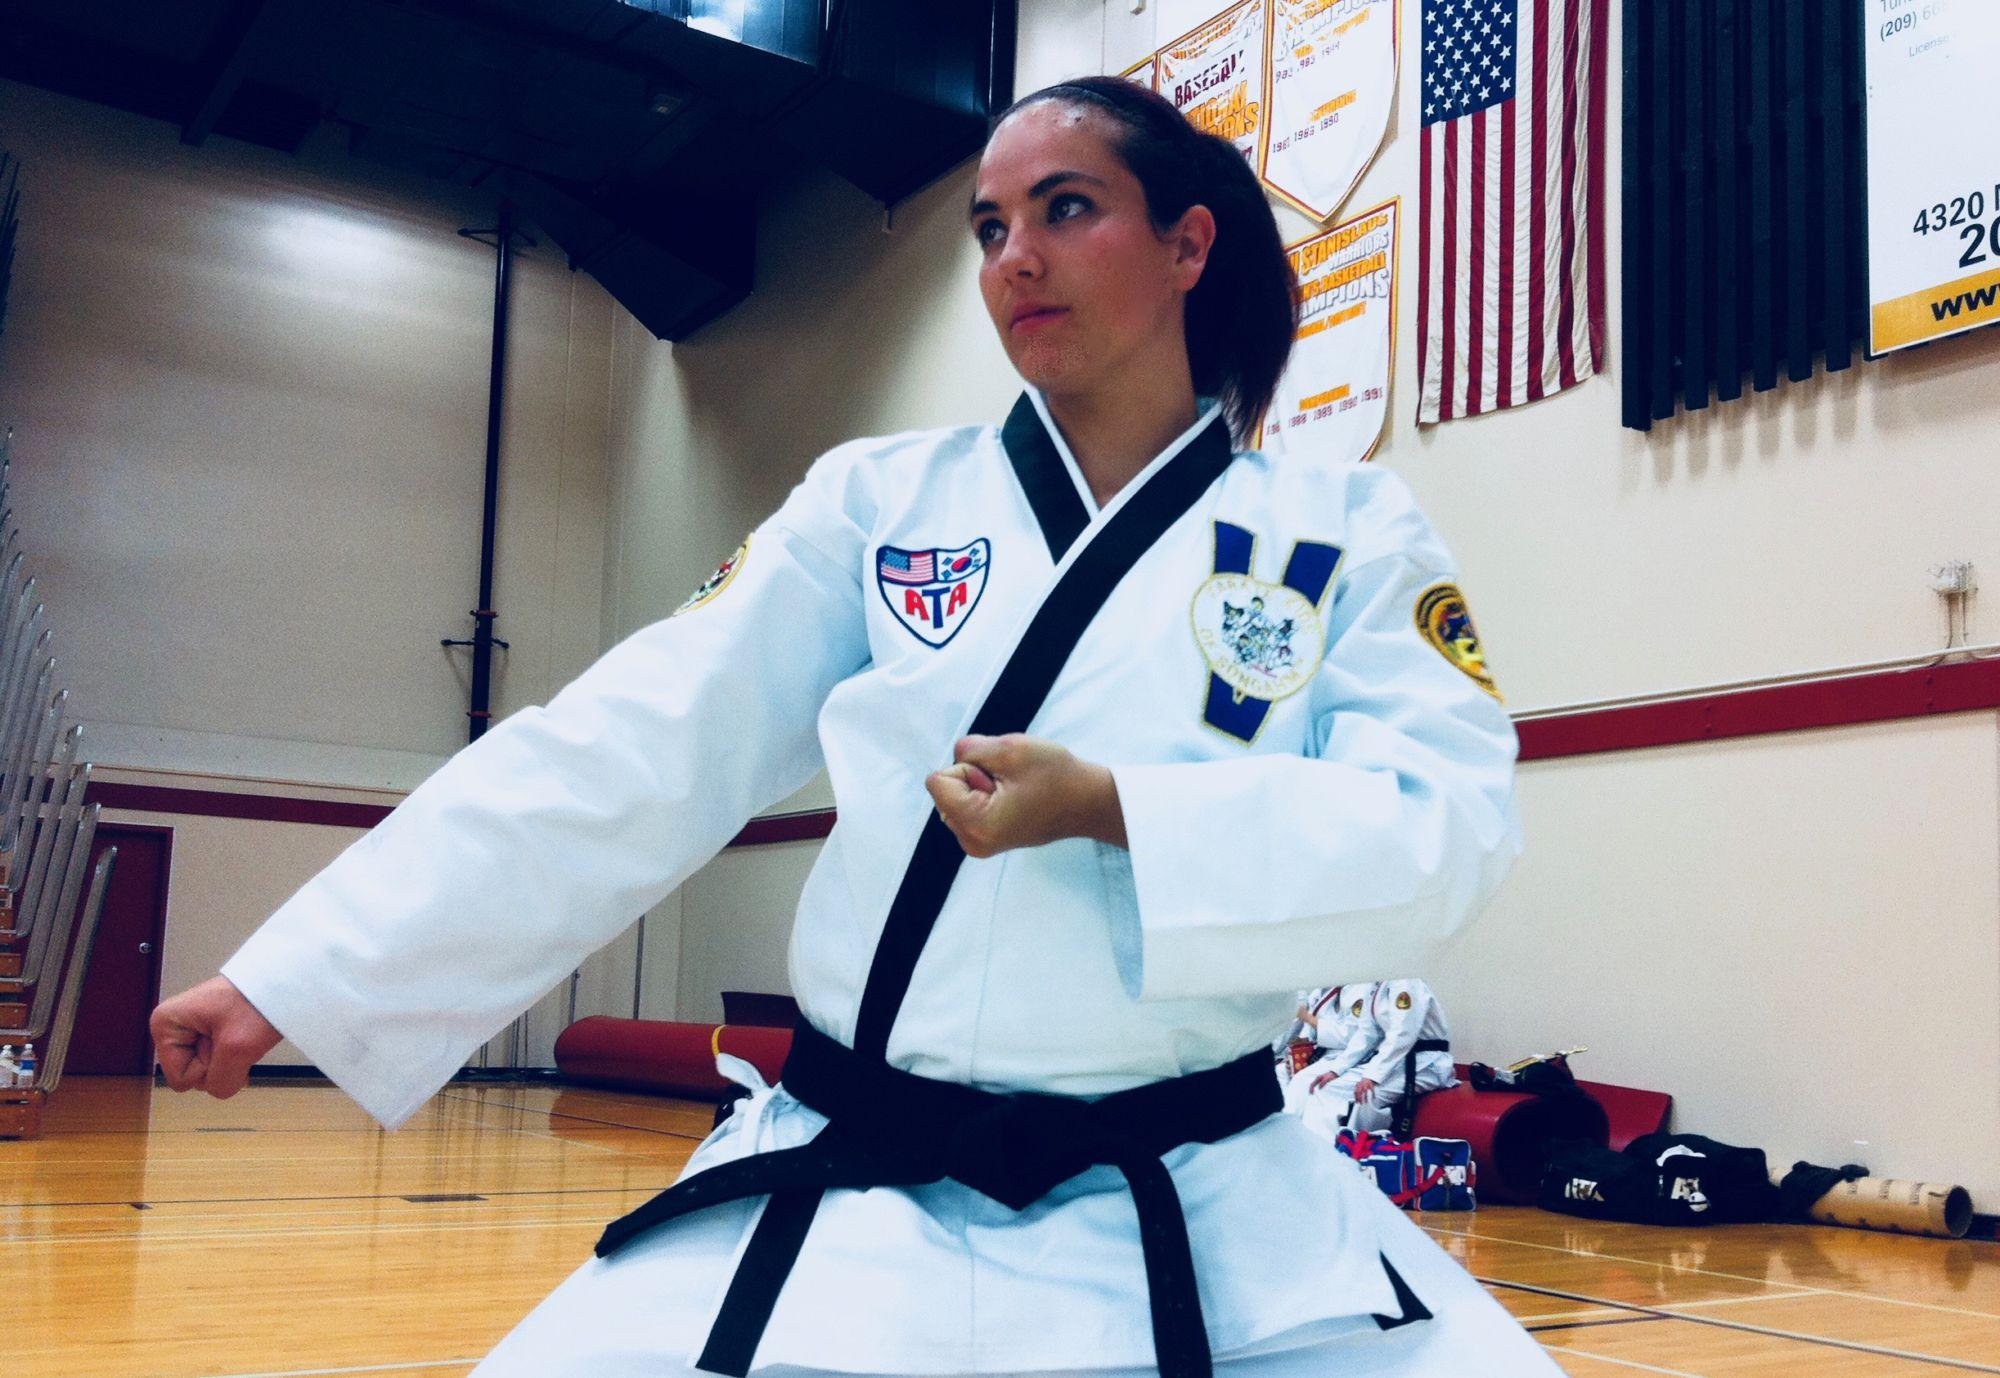 Just for kicks; Teacher balances teaching and Taekwondo